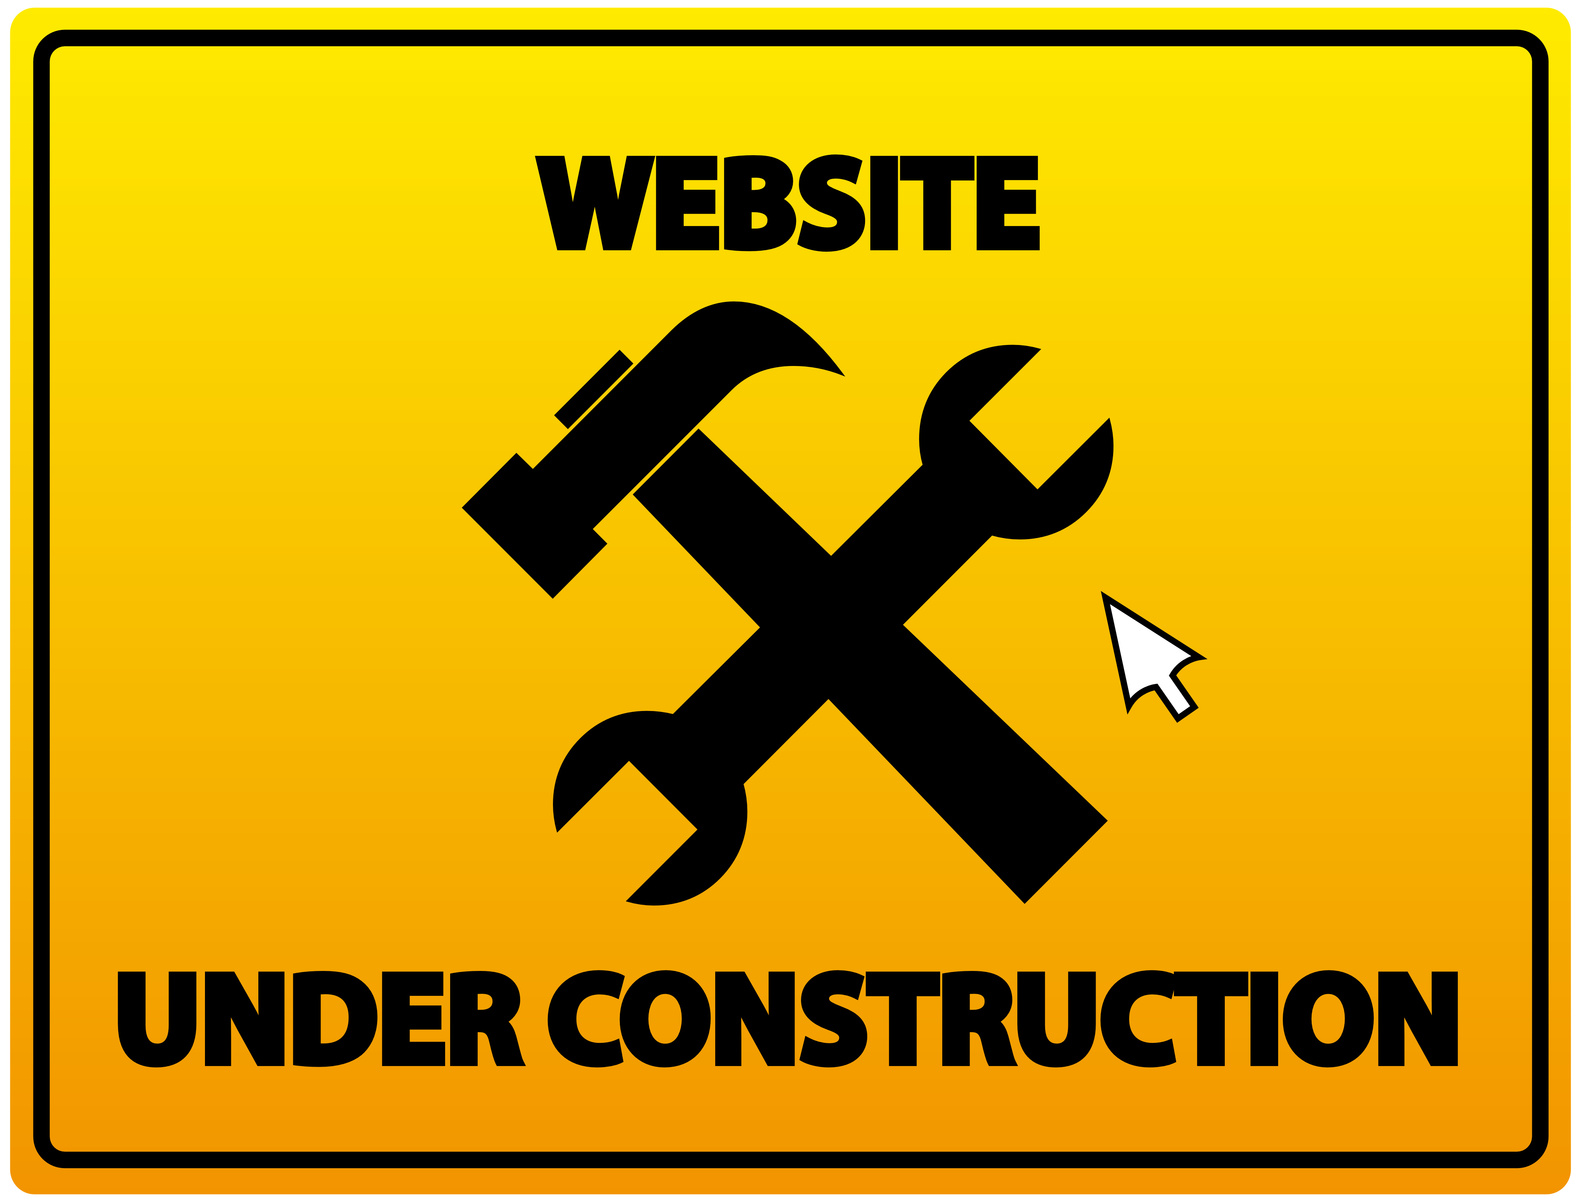 Website Under Construction Image Free Download Best Website Under